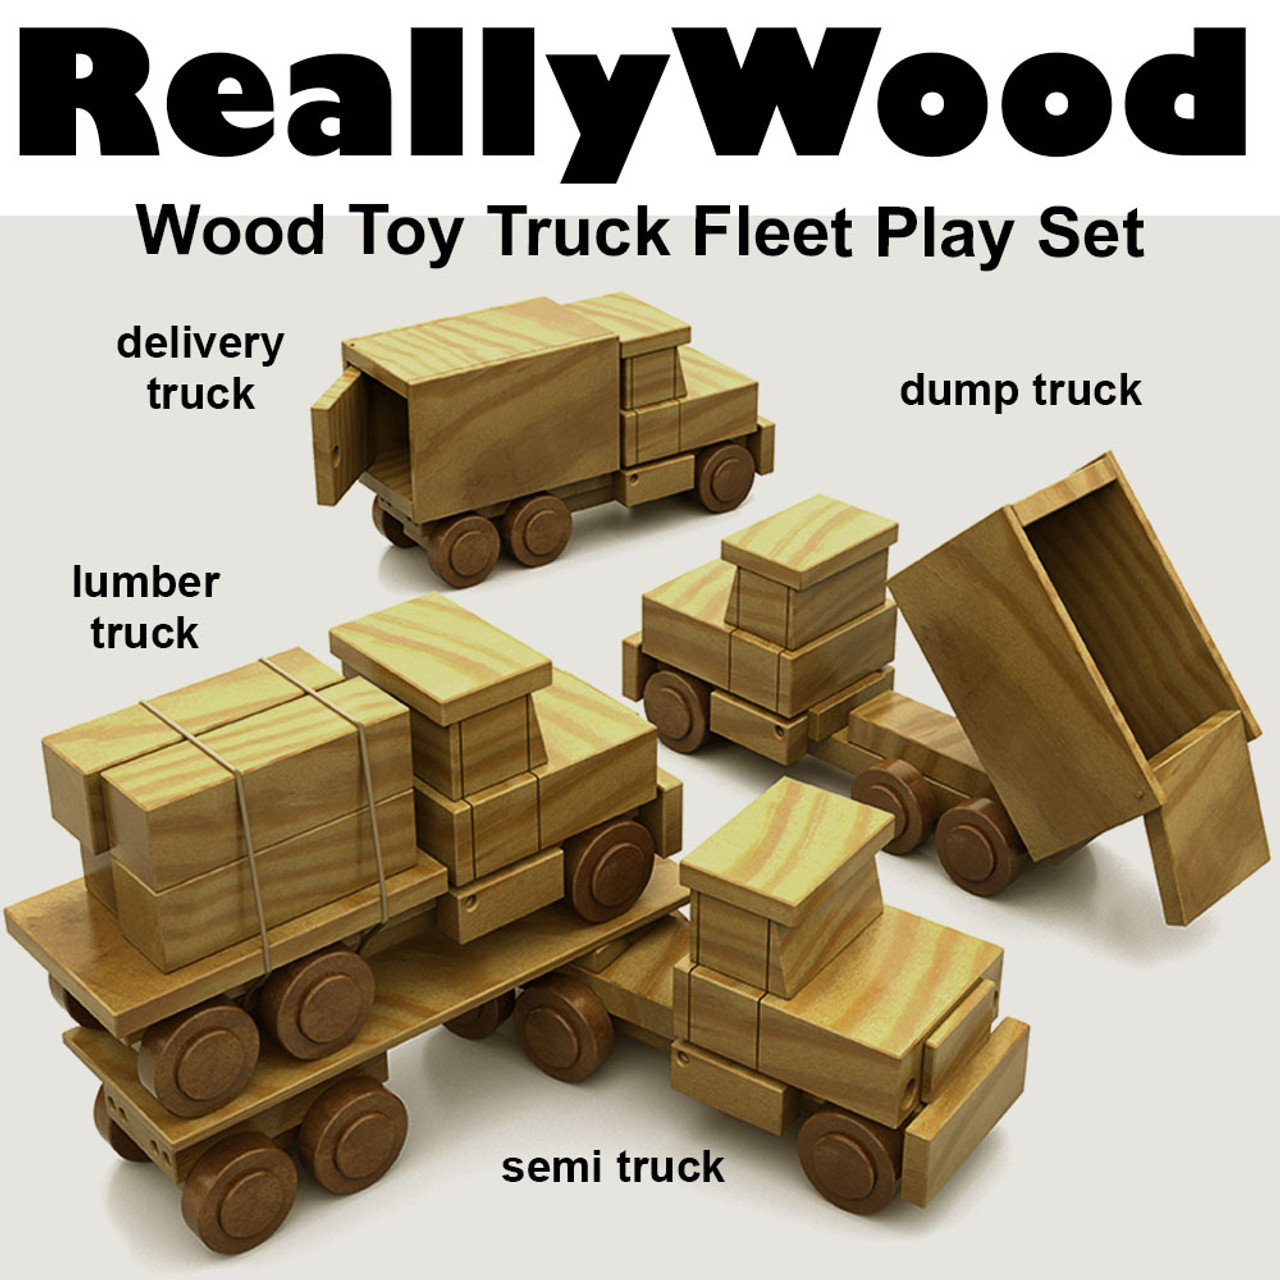 Reallywood Fleet Of 4 Trucks Wood Toy Plans Pdf Download